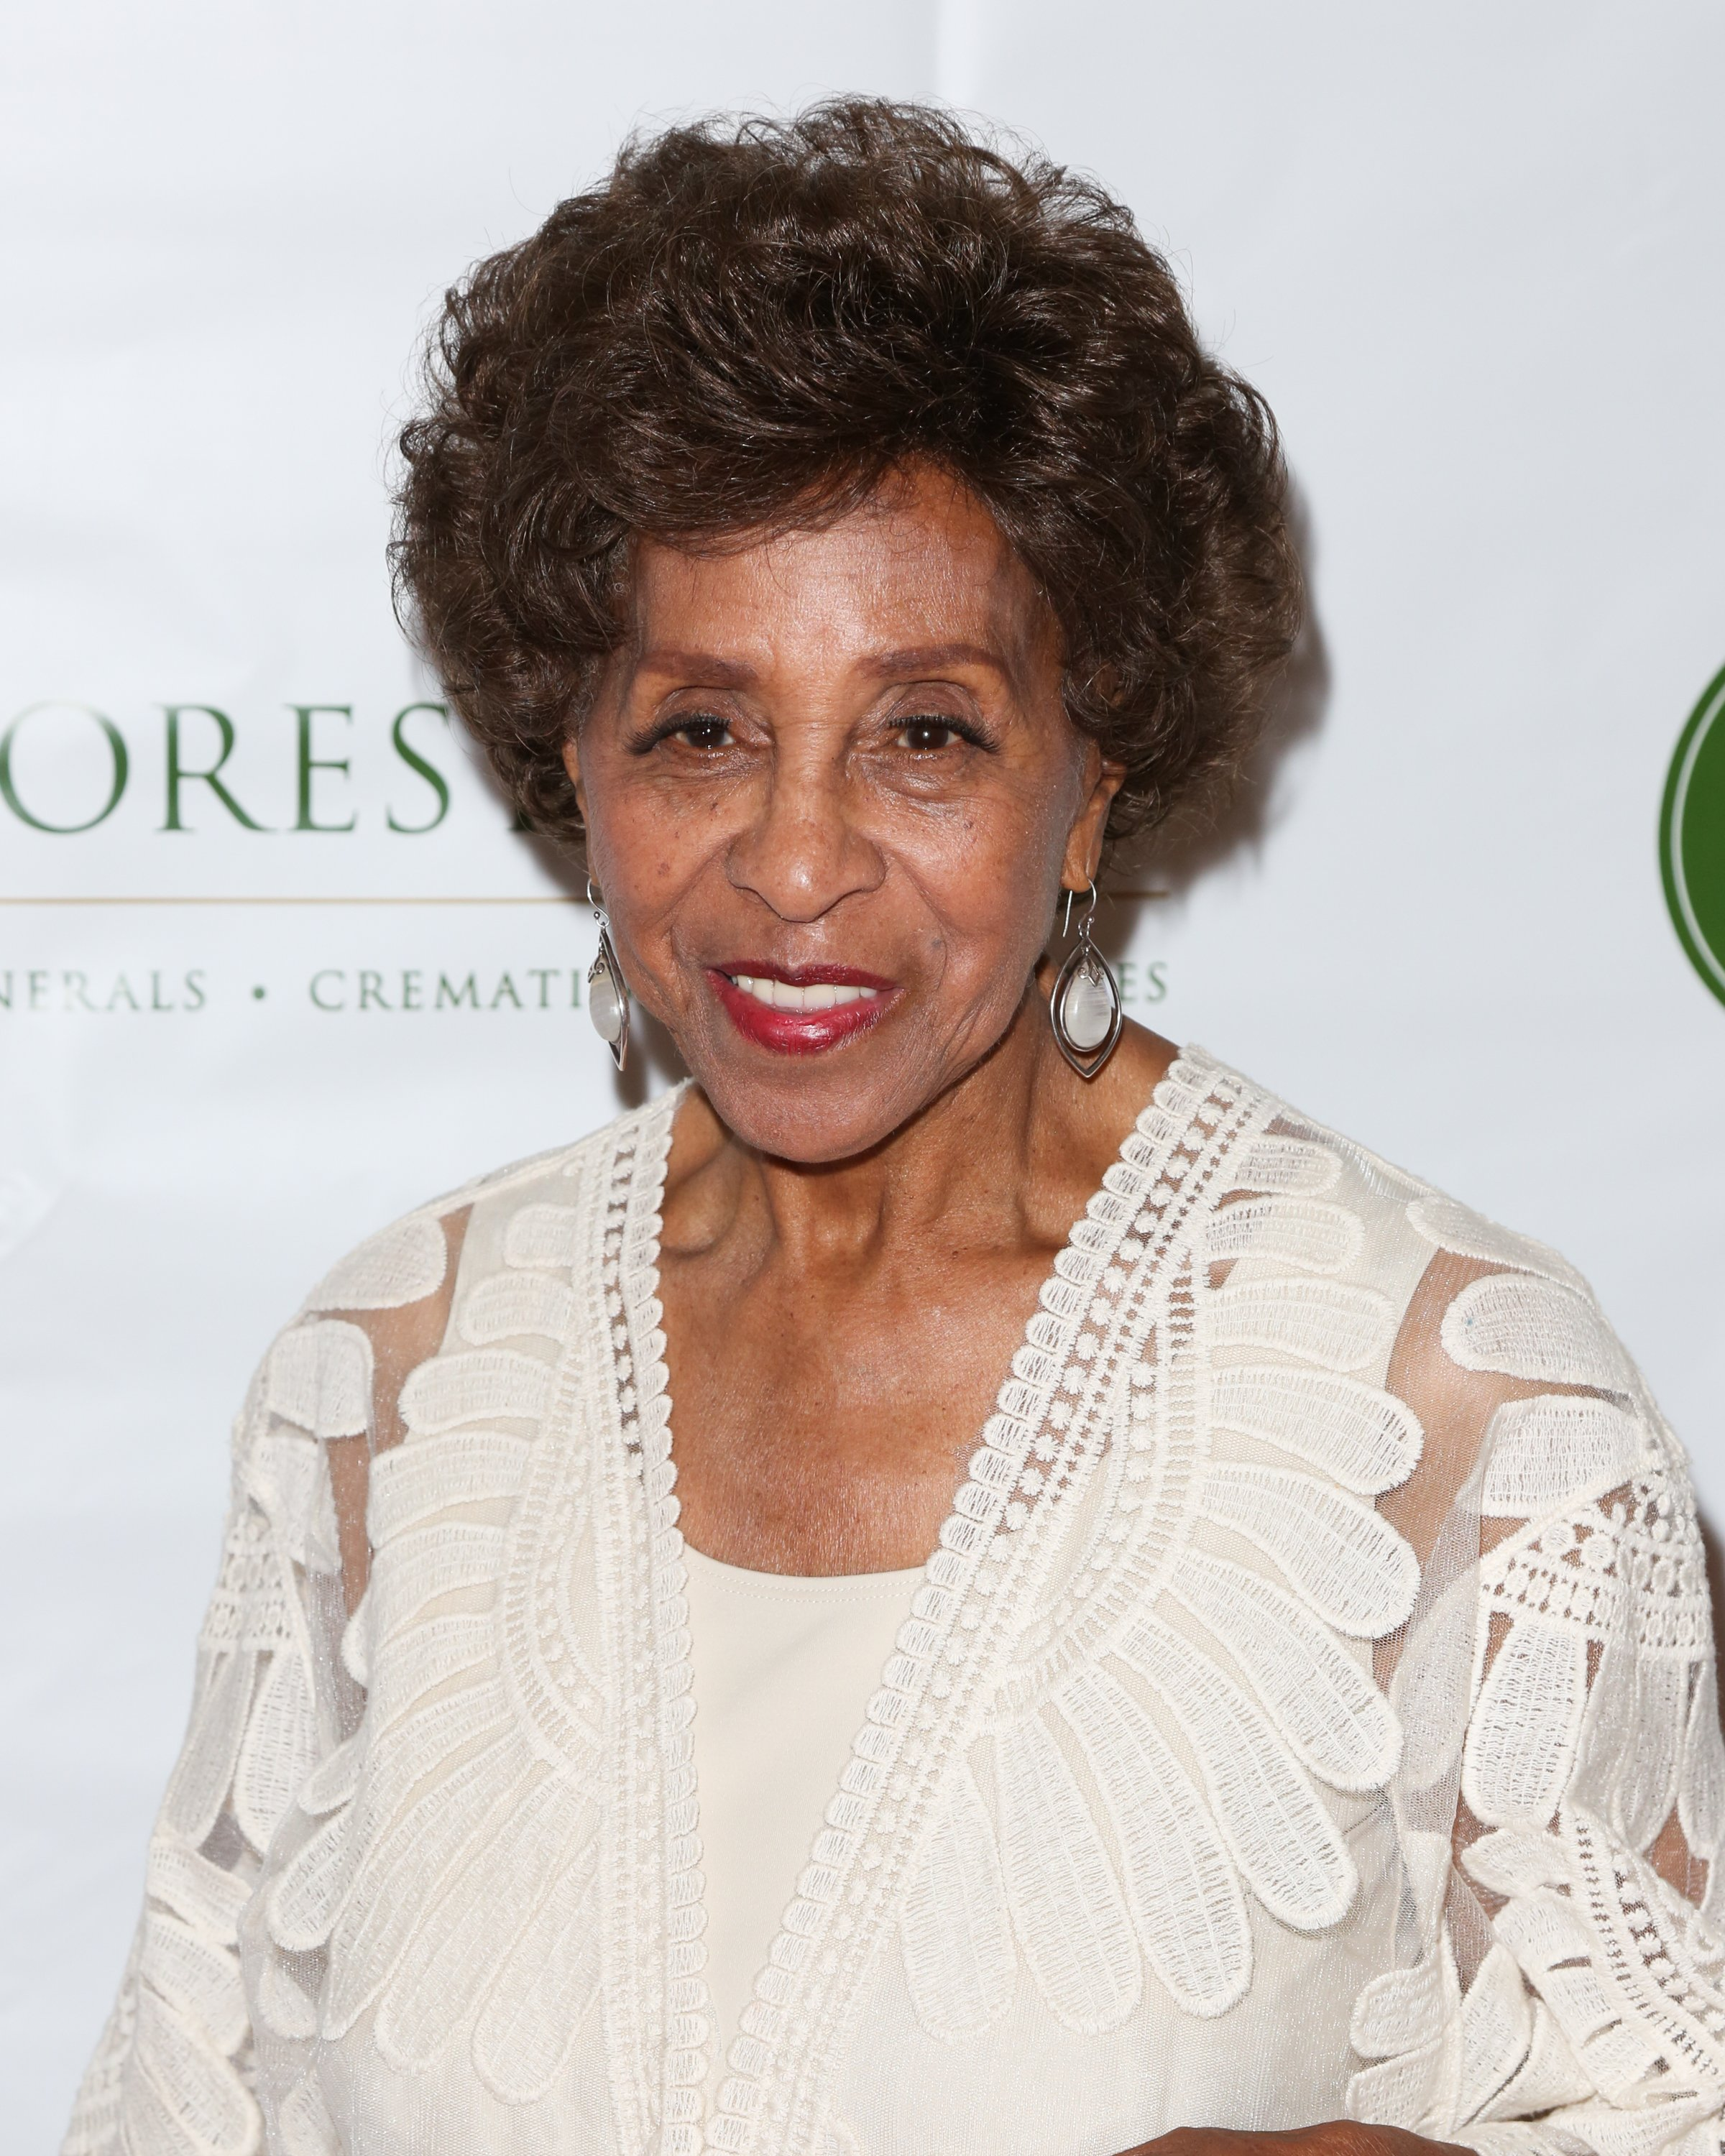 Marla Gibbs at The John Edgar Wideman Experience on February 3, 2018 in Los Angeles, California   Photo: Getty Images